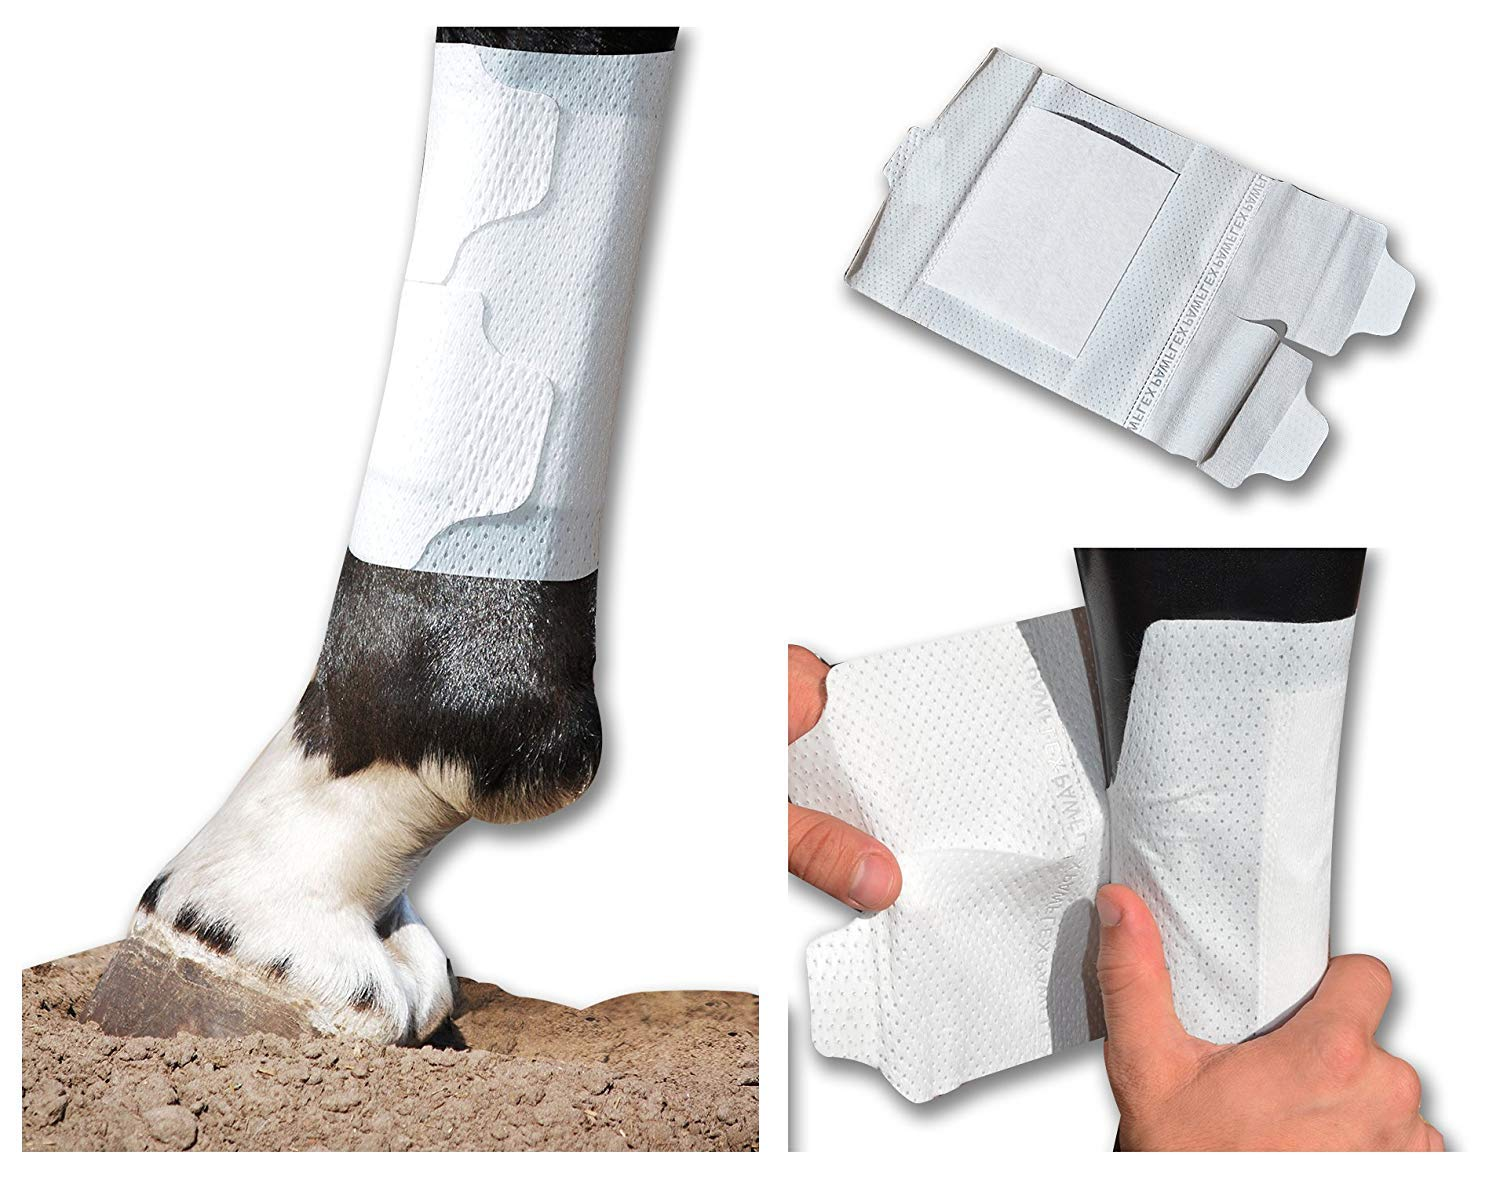 Cohesive wrap Alternative BandaFlex Horse Bandages for Lower Leg Double Catch Velcro Fasteners Super Stretch, Disposable, Washable & Breathable (Large 10 Pack - 1 Sample Small)